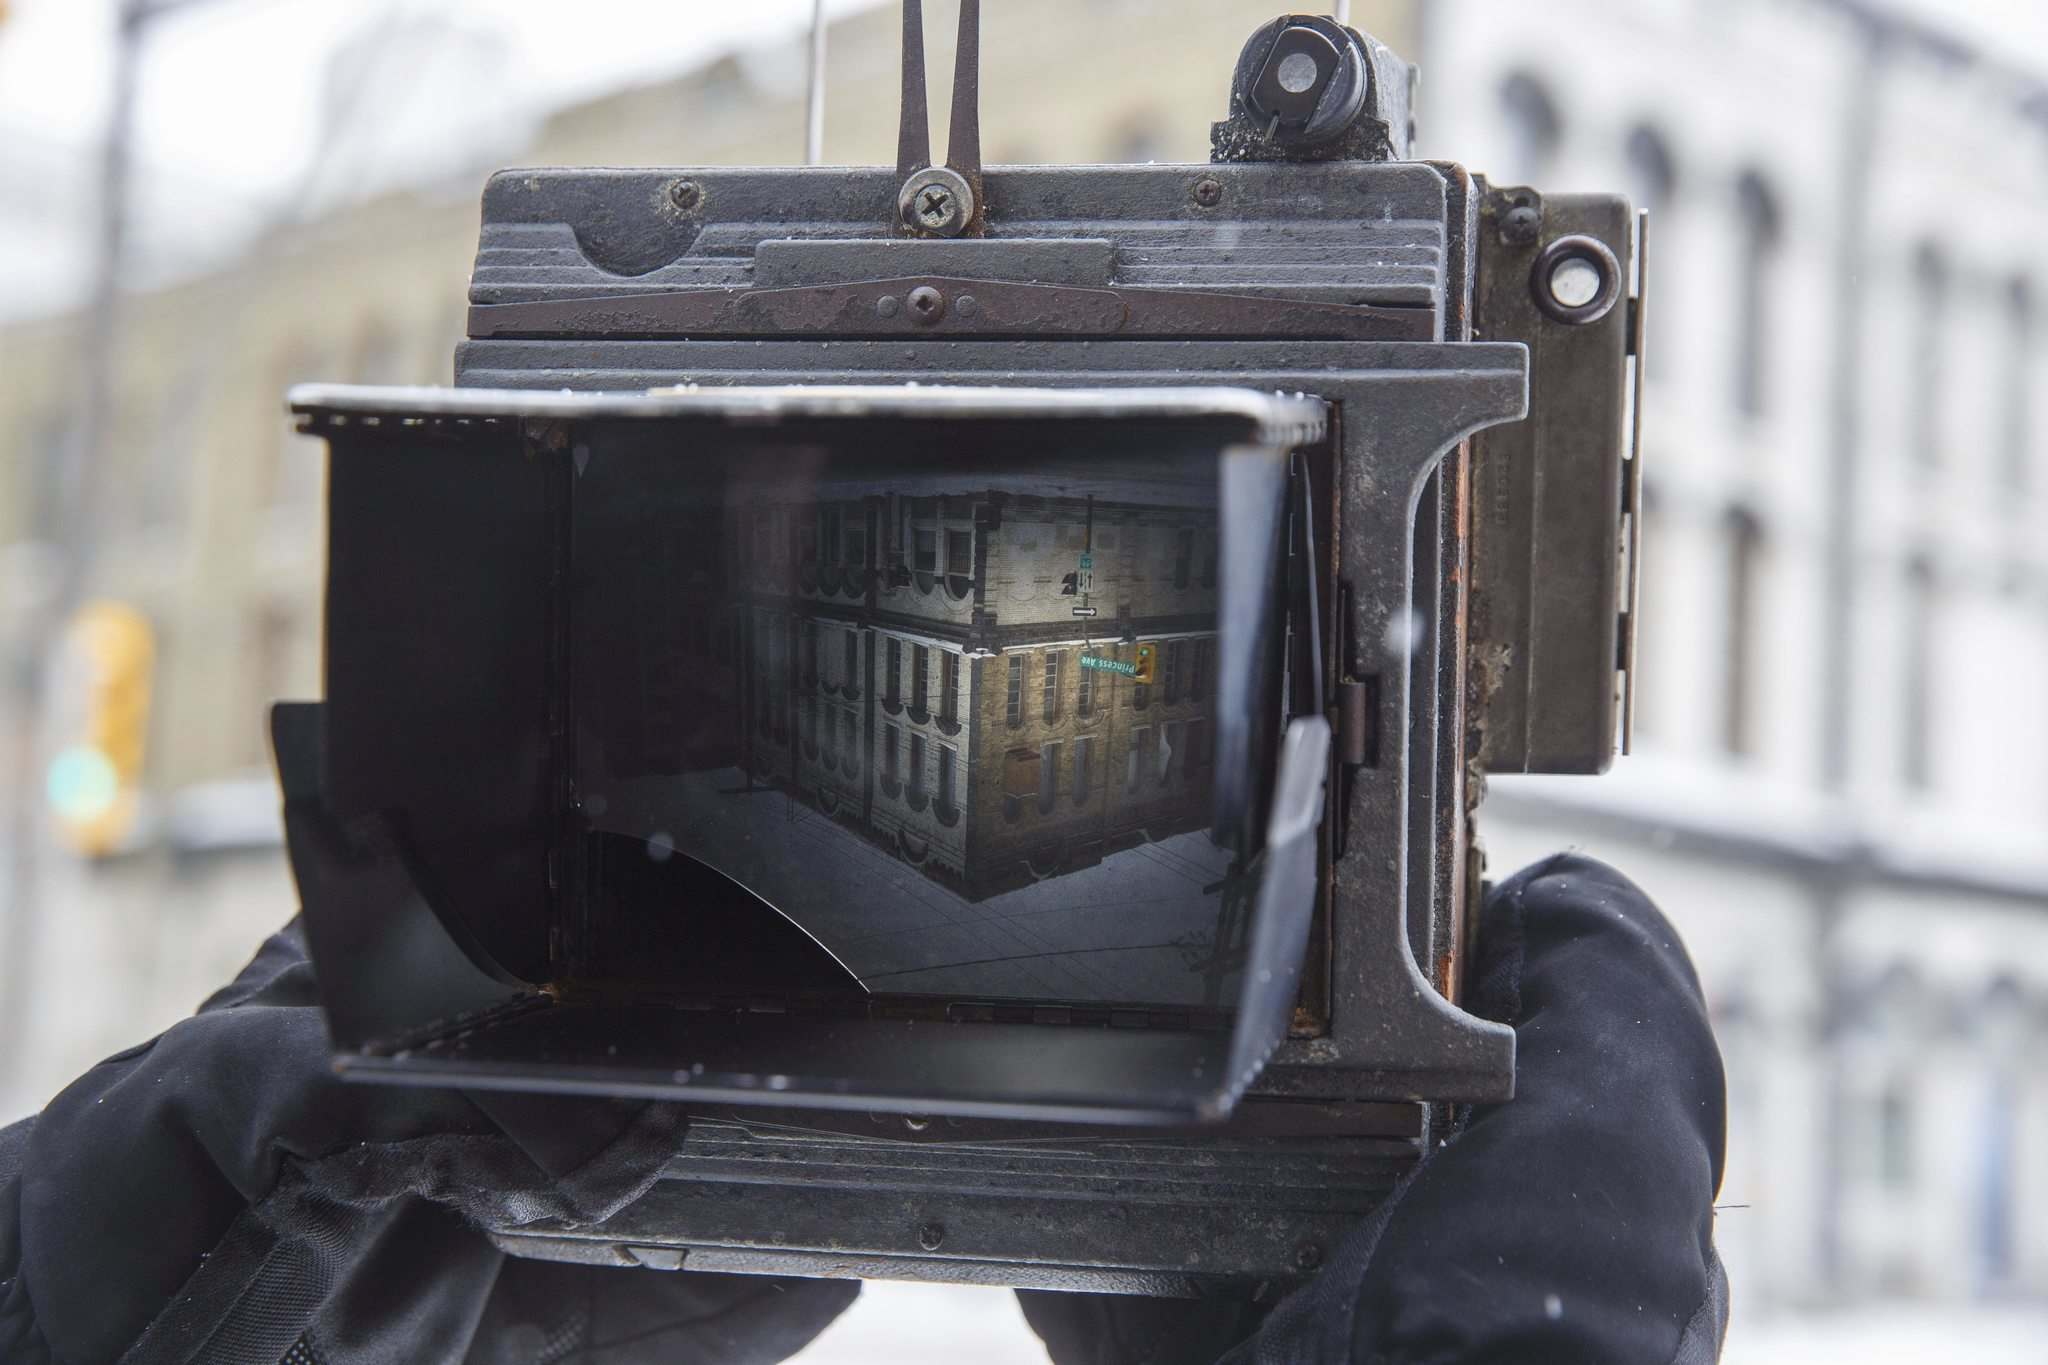 Keith Levit frames a shot in the ground glass viewer of his large-format 4x5 camera. (Mike Deal / Winnipeg Free Press)</p></p>